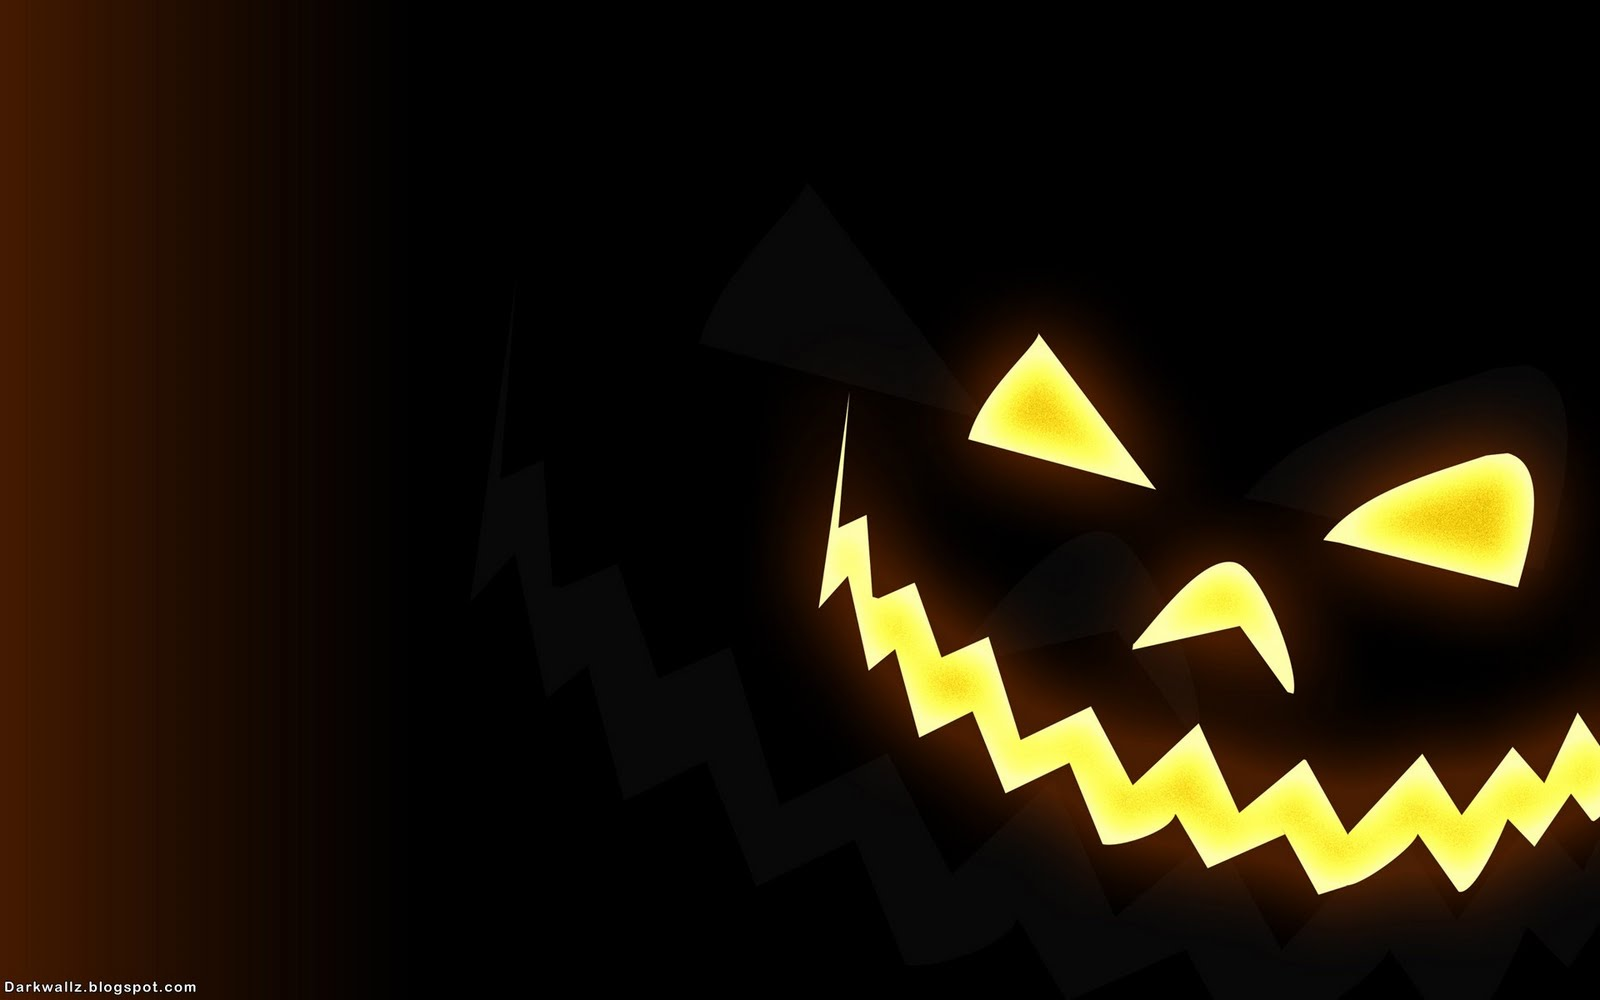 Halloween Wallpapers 08 | Dark Wallpaper Download